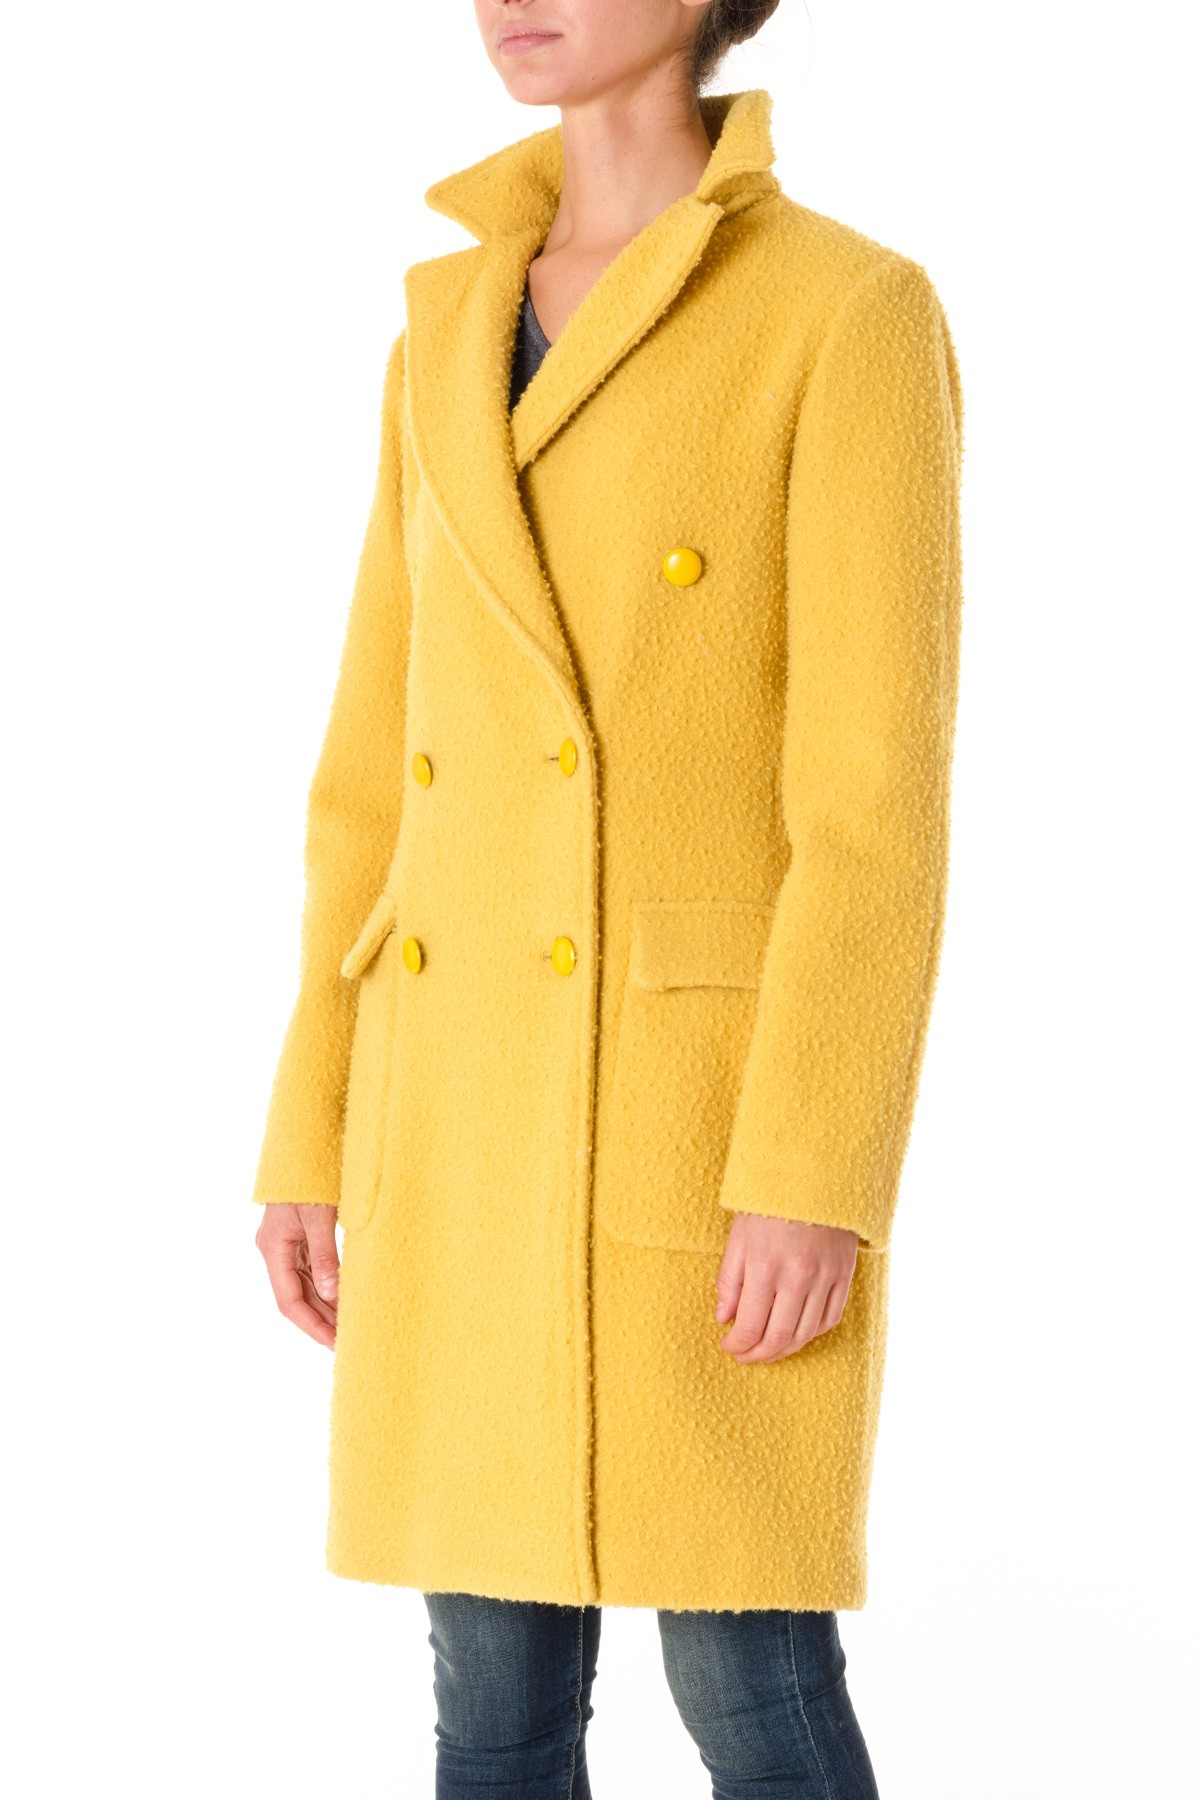 Buy your wool jacket Chanel on Vestiaire Collective, the luxury consignment store online. Second-hand Wool jacket Chanel Yellow in Wool available.